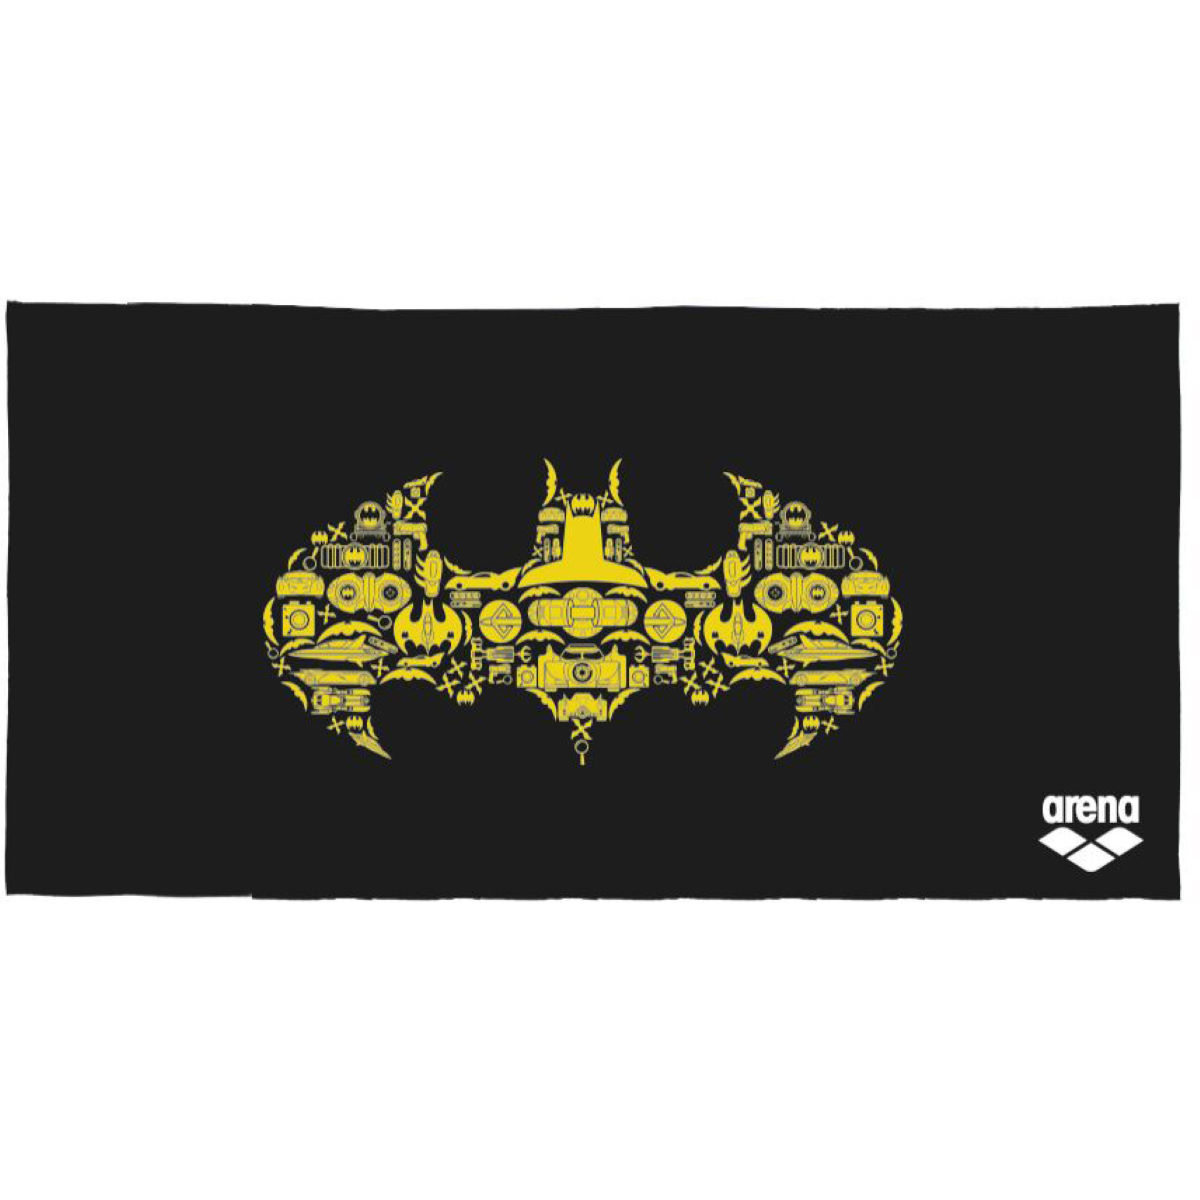 Arena Super Hero Towel - Toallas